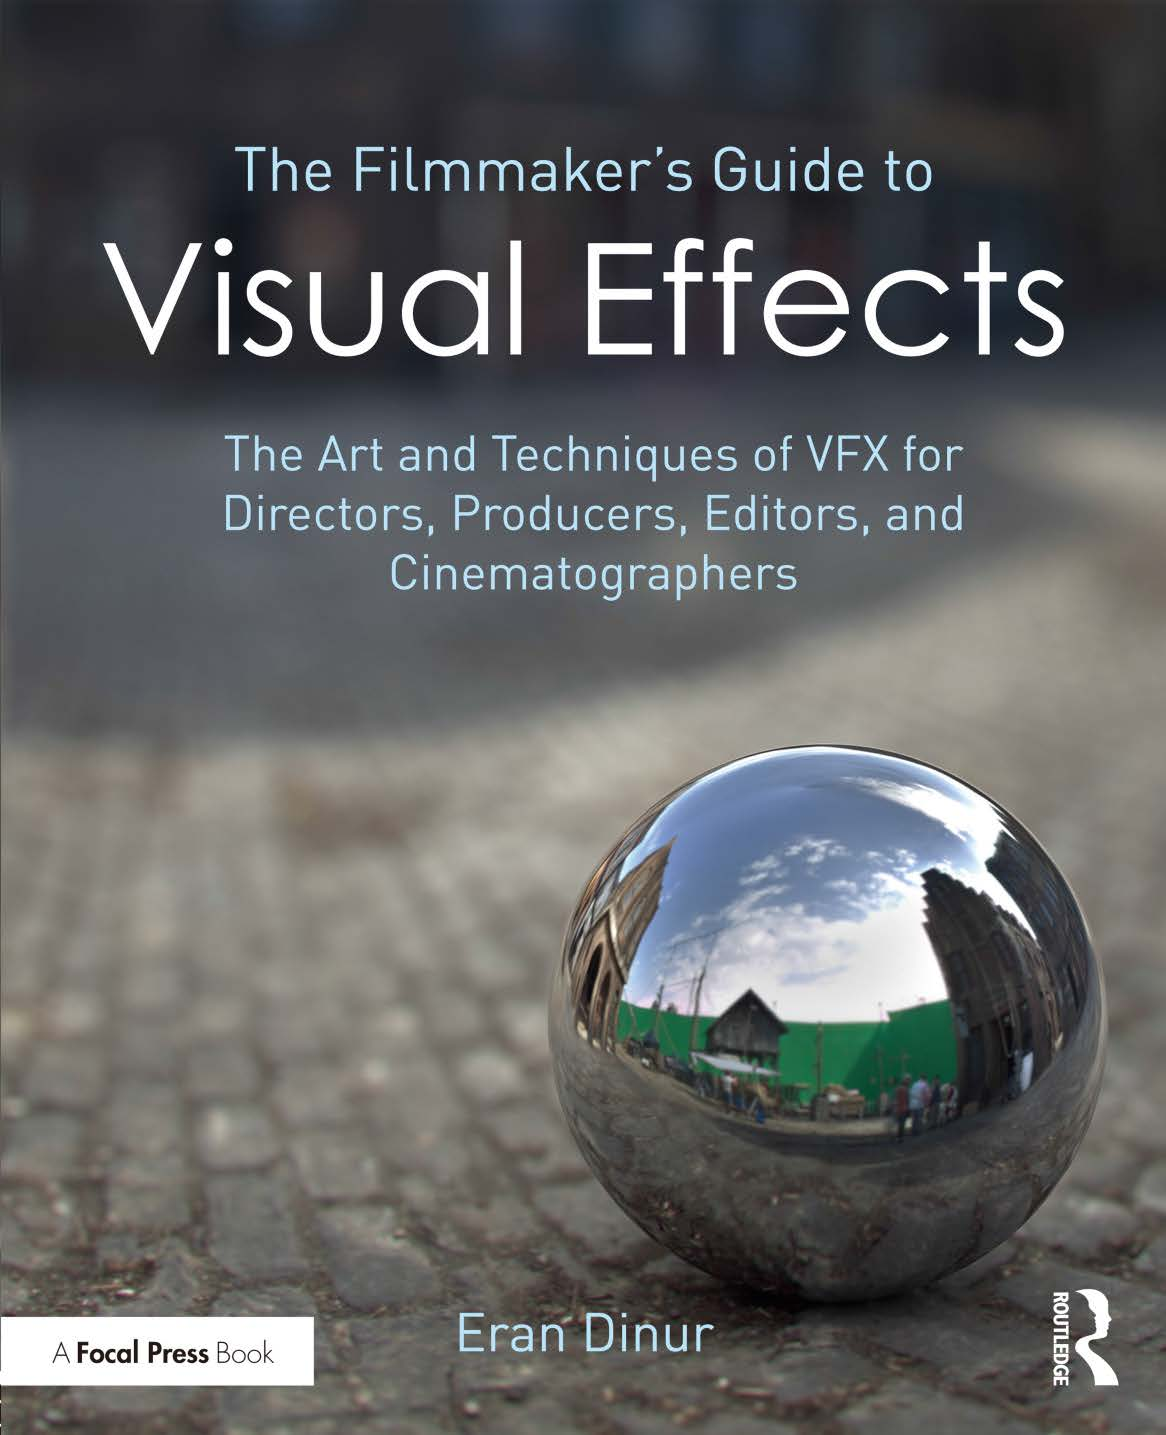 The Filmmaker's Guide to Visual Effects